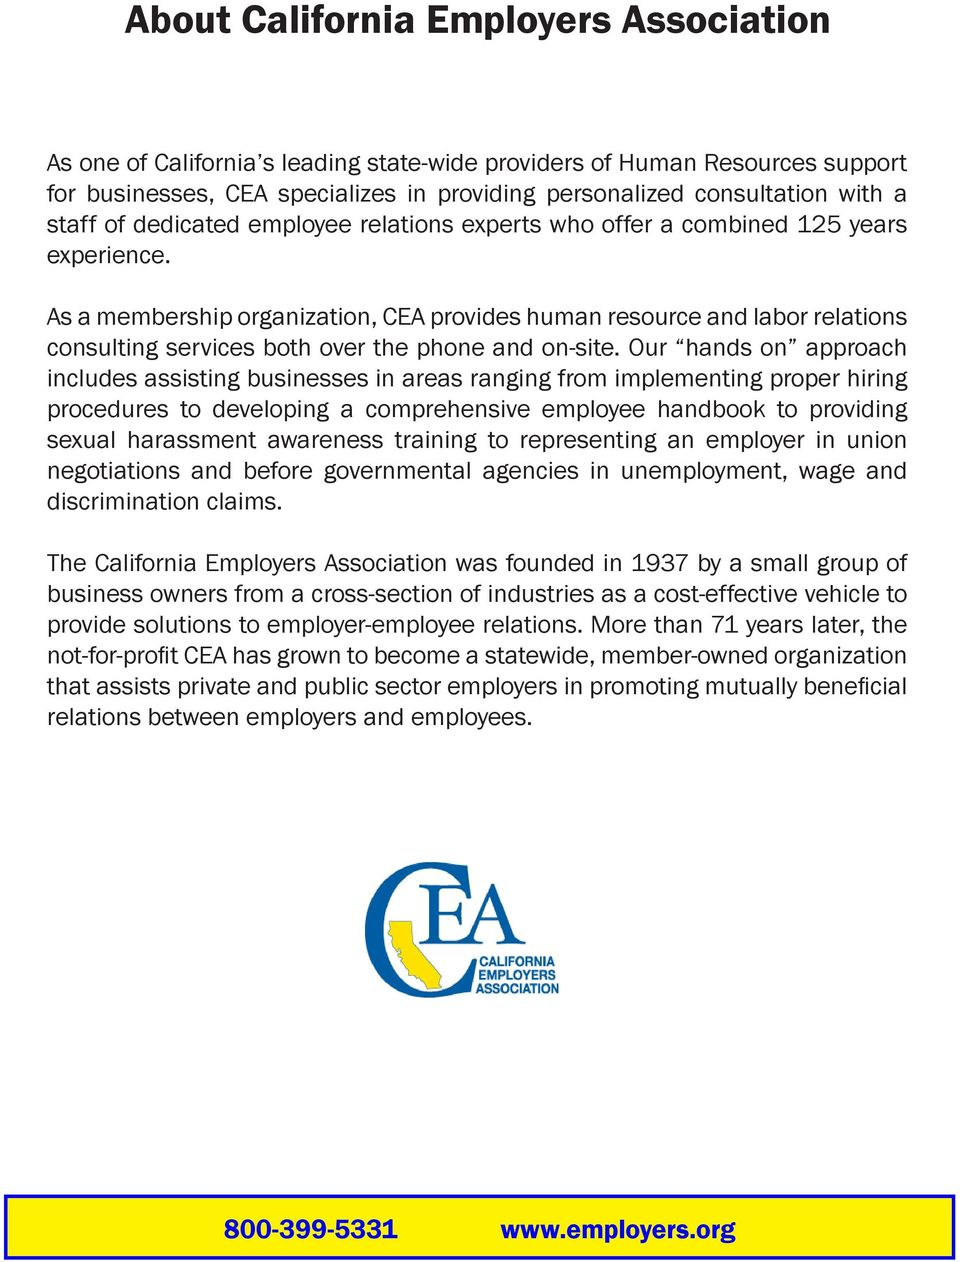 As a membership organization, CEA provides human resource and labor relations consulting services both over the phone and on-site.